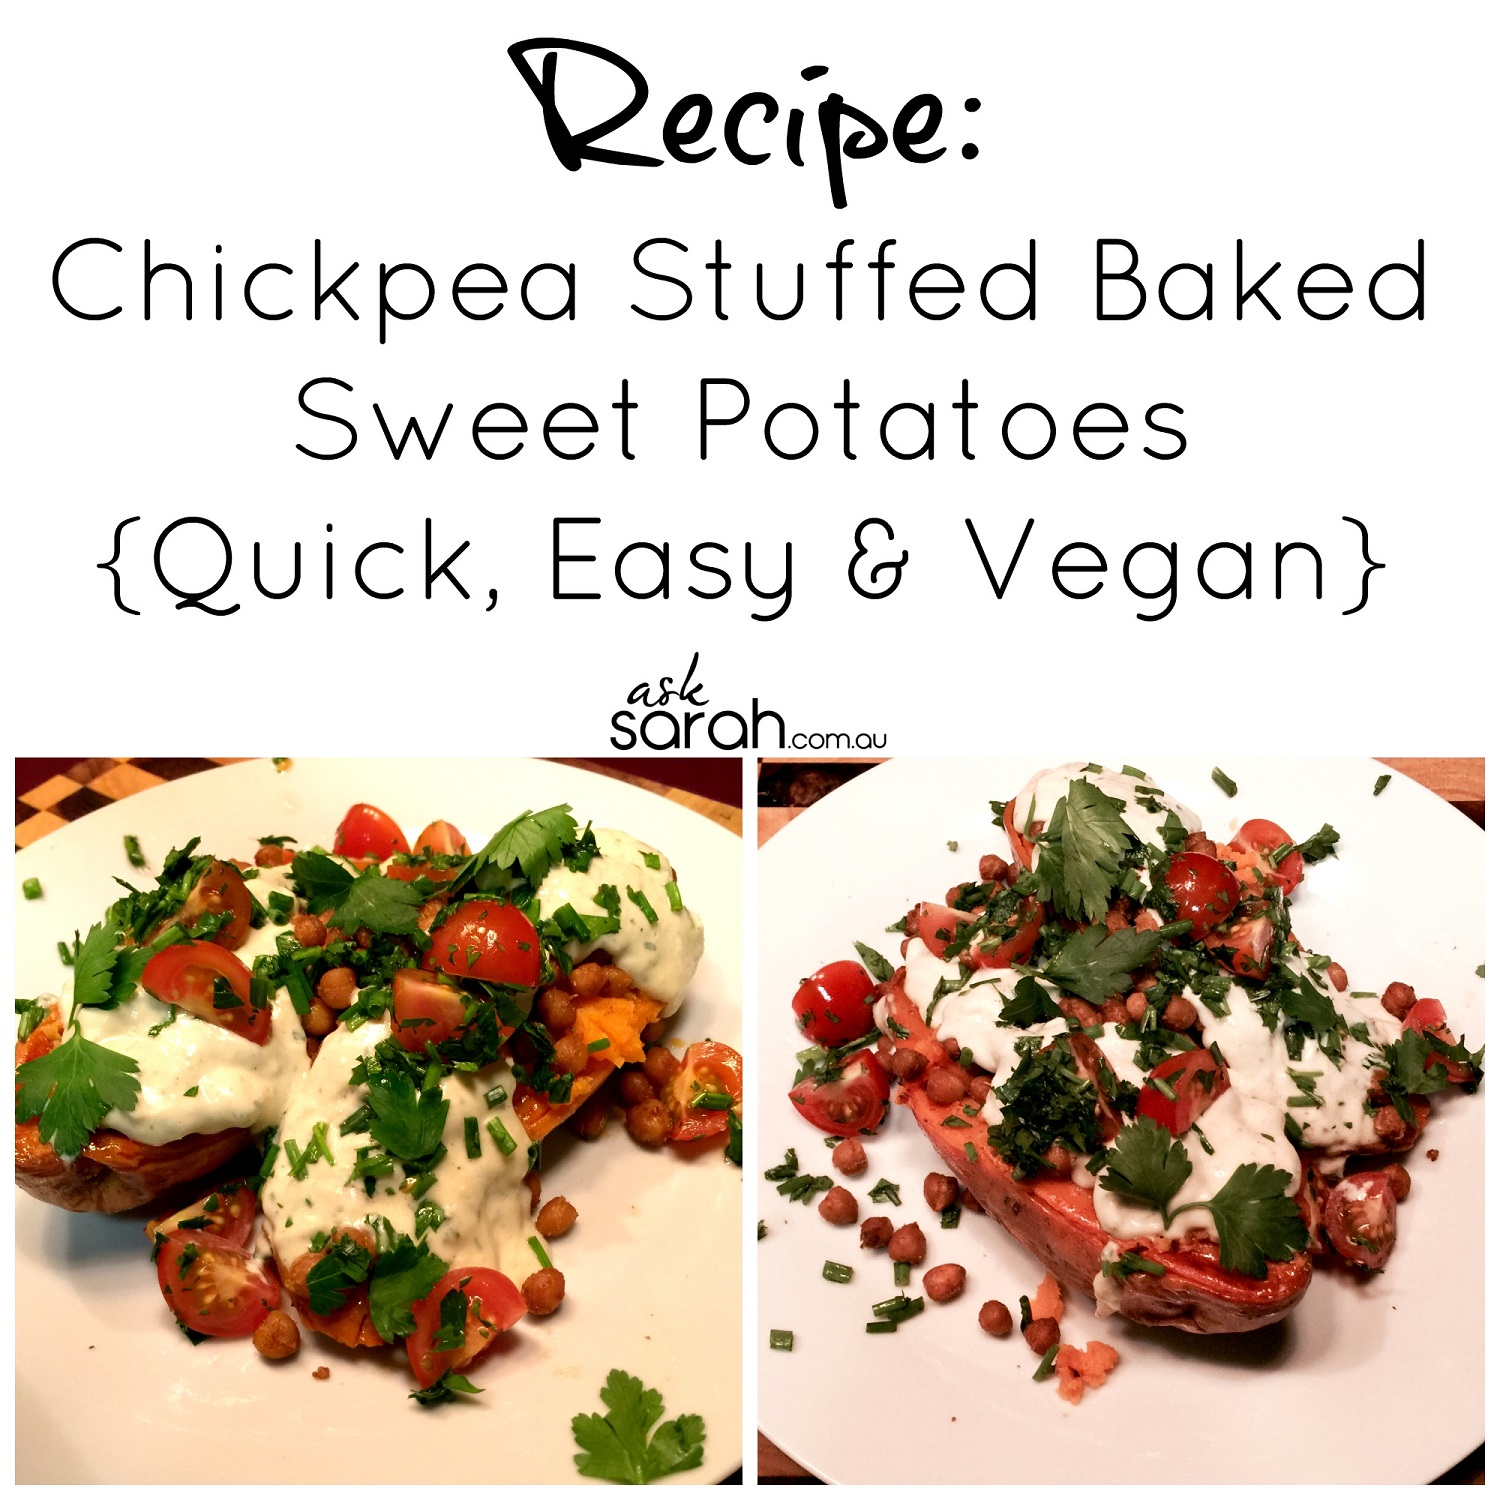 Recipe: Chickpea Stuffed Baked Sweet Potatoes {Quick, Easy & Vegan}